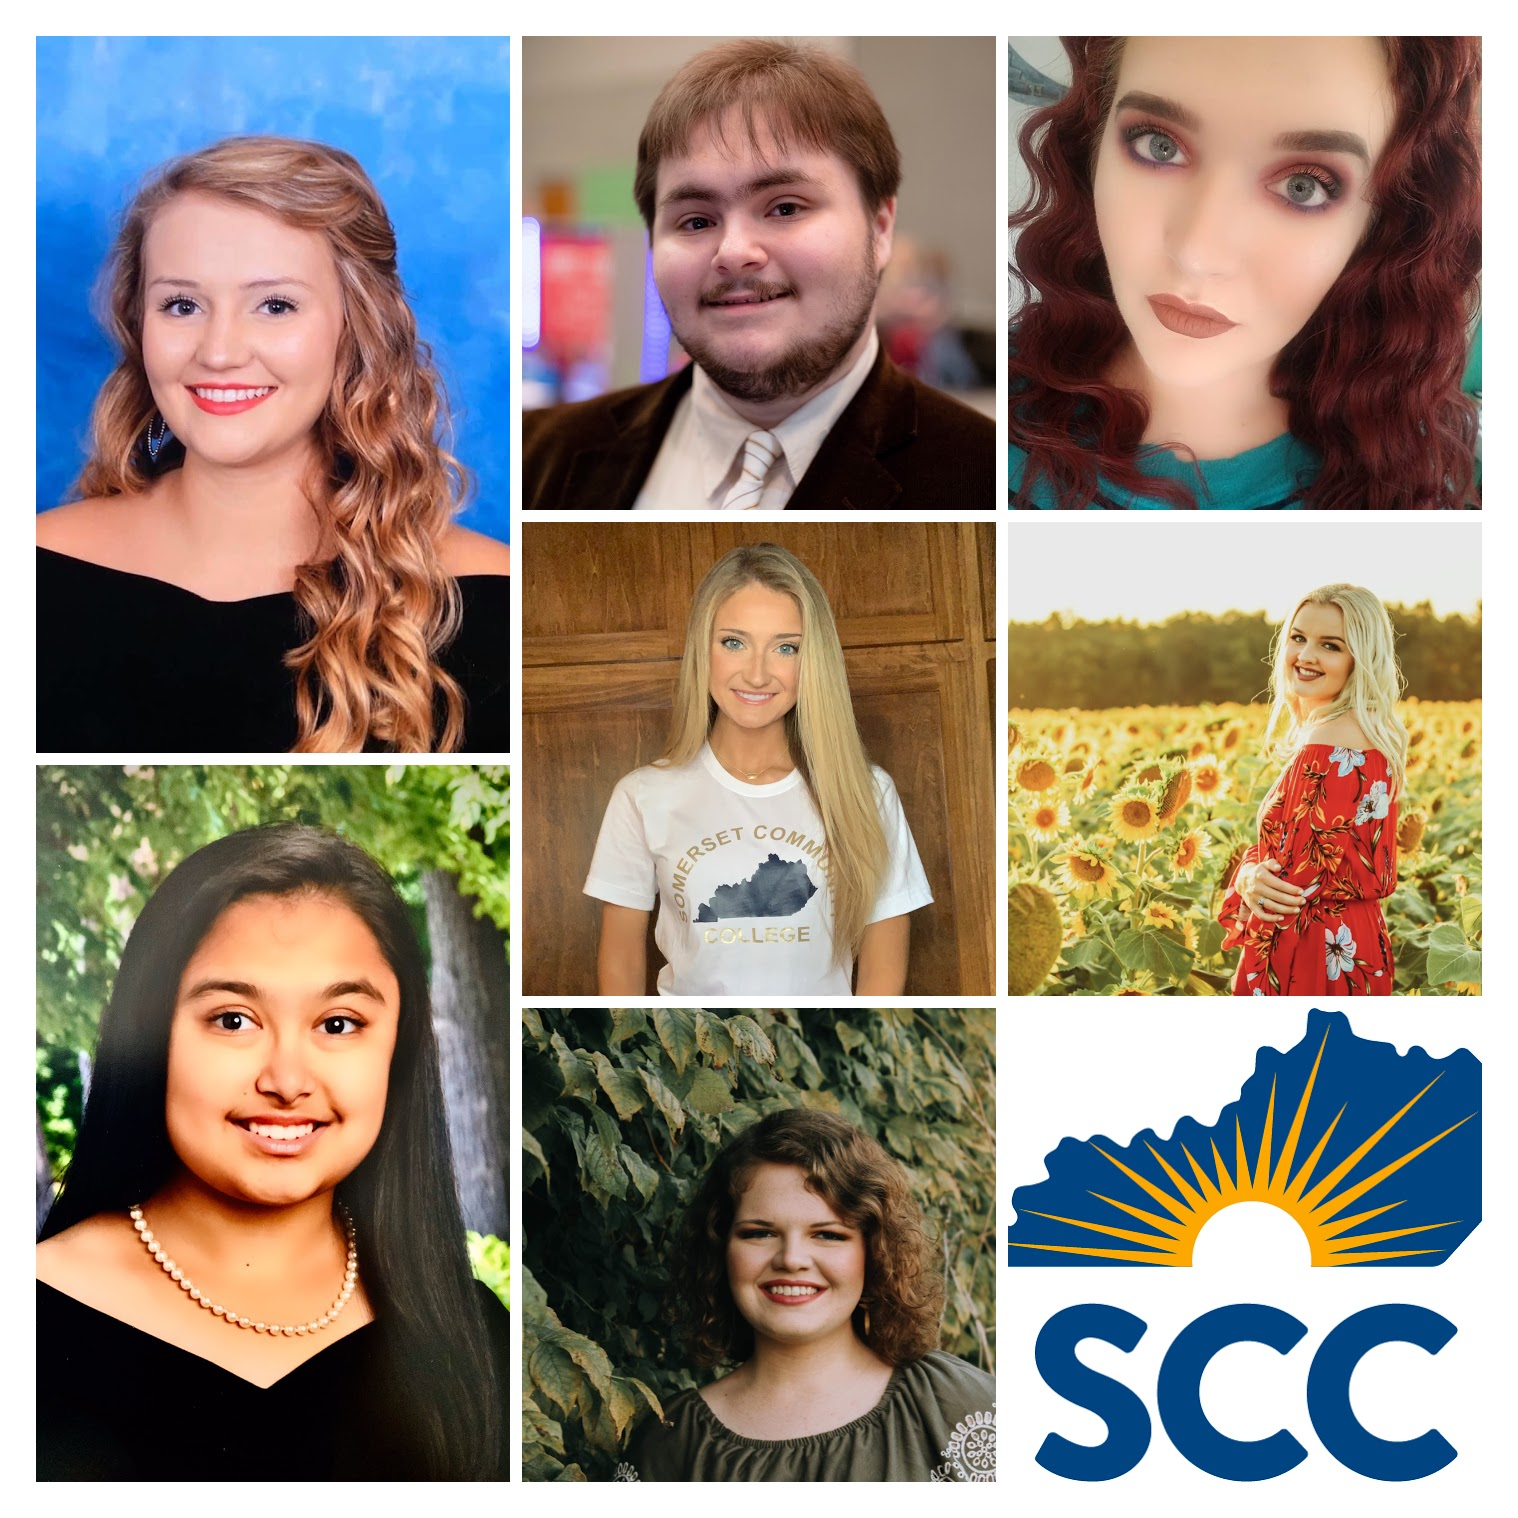 photo collage of students receiving scholarships at scc